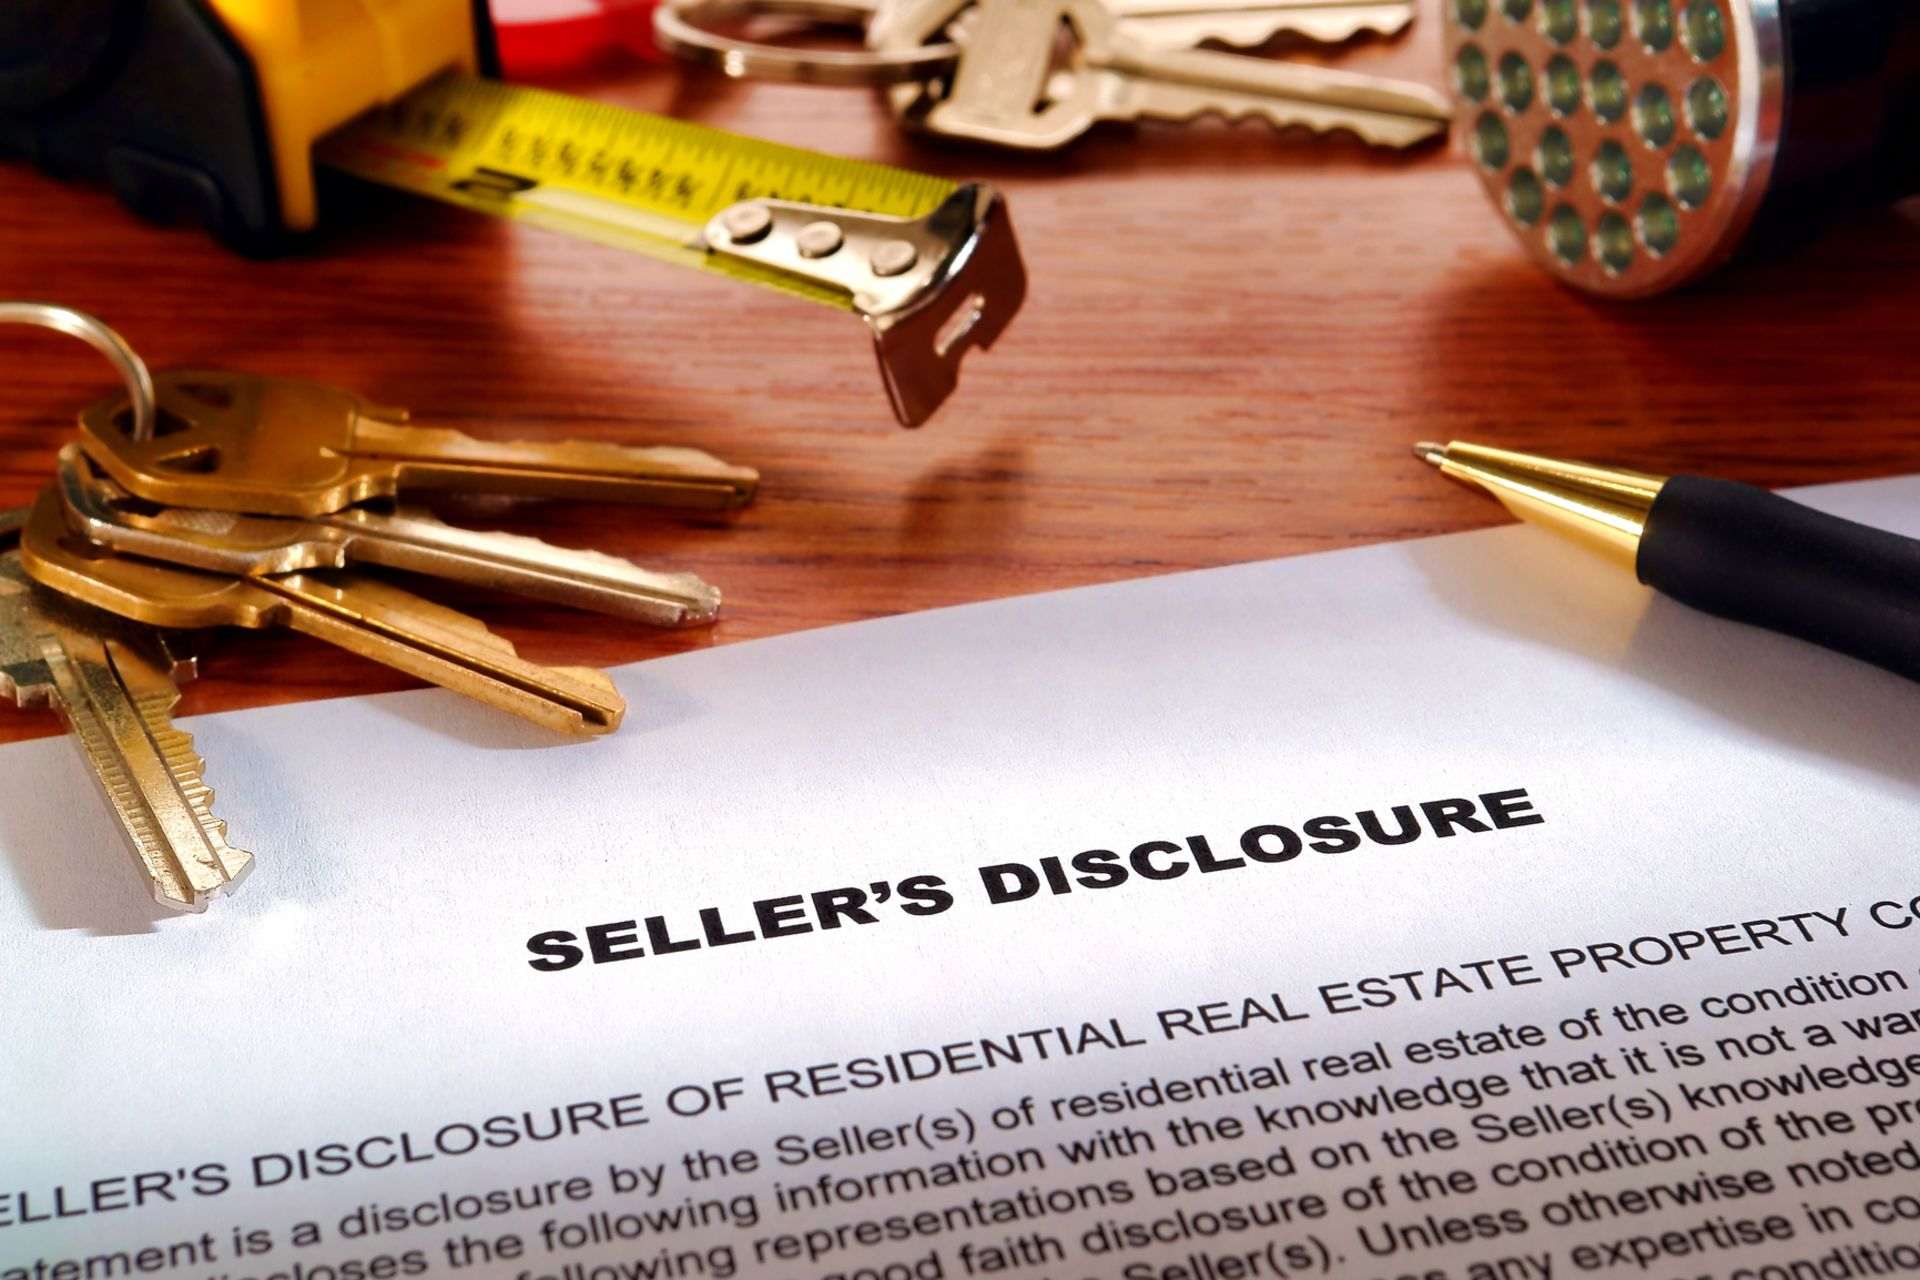 Your Seller's Disclosure